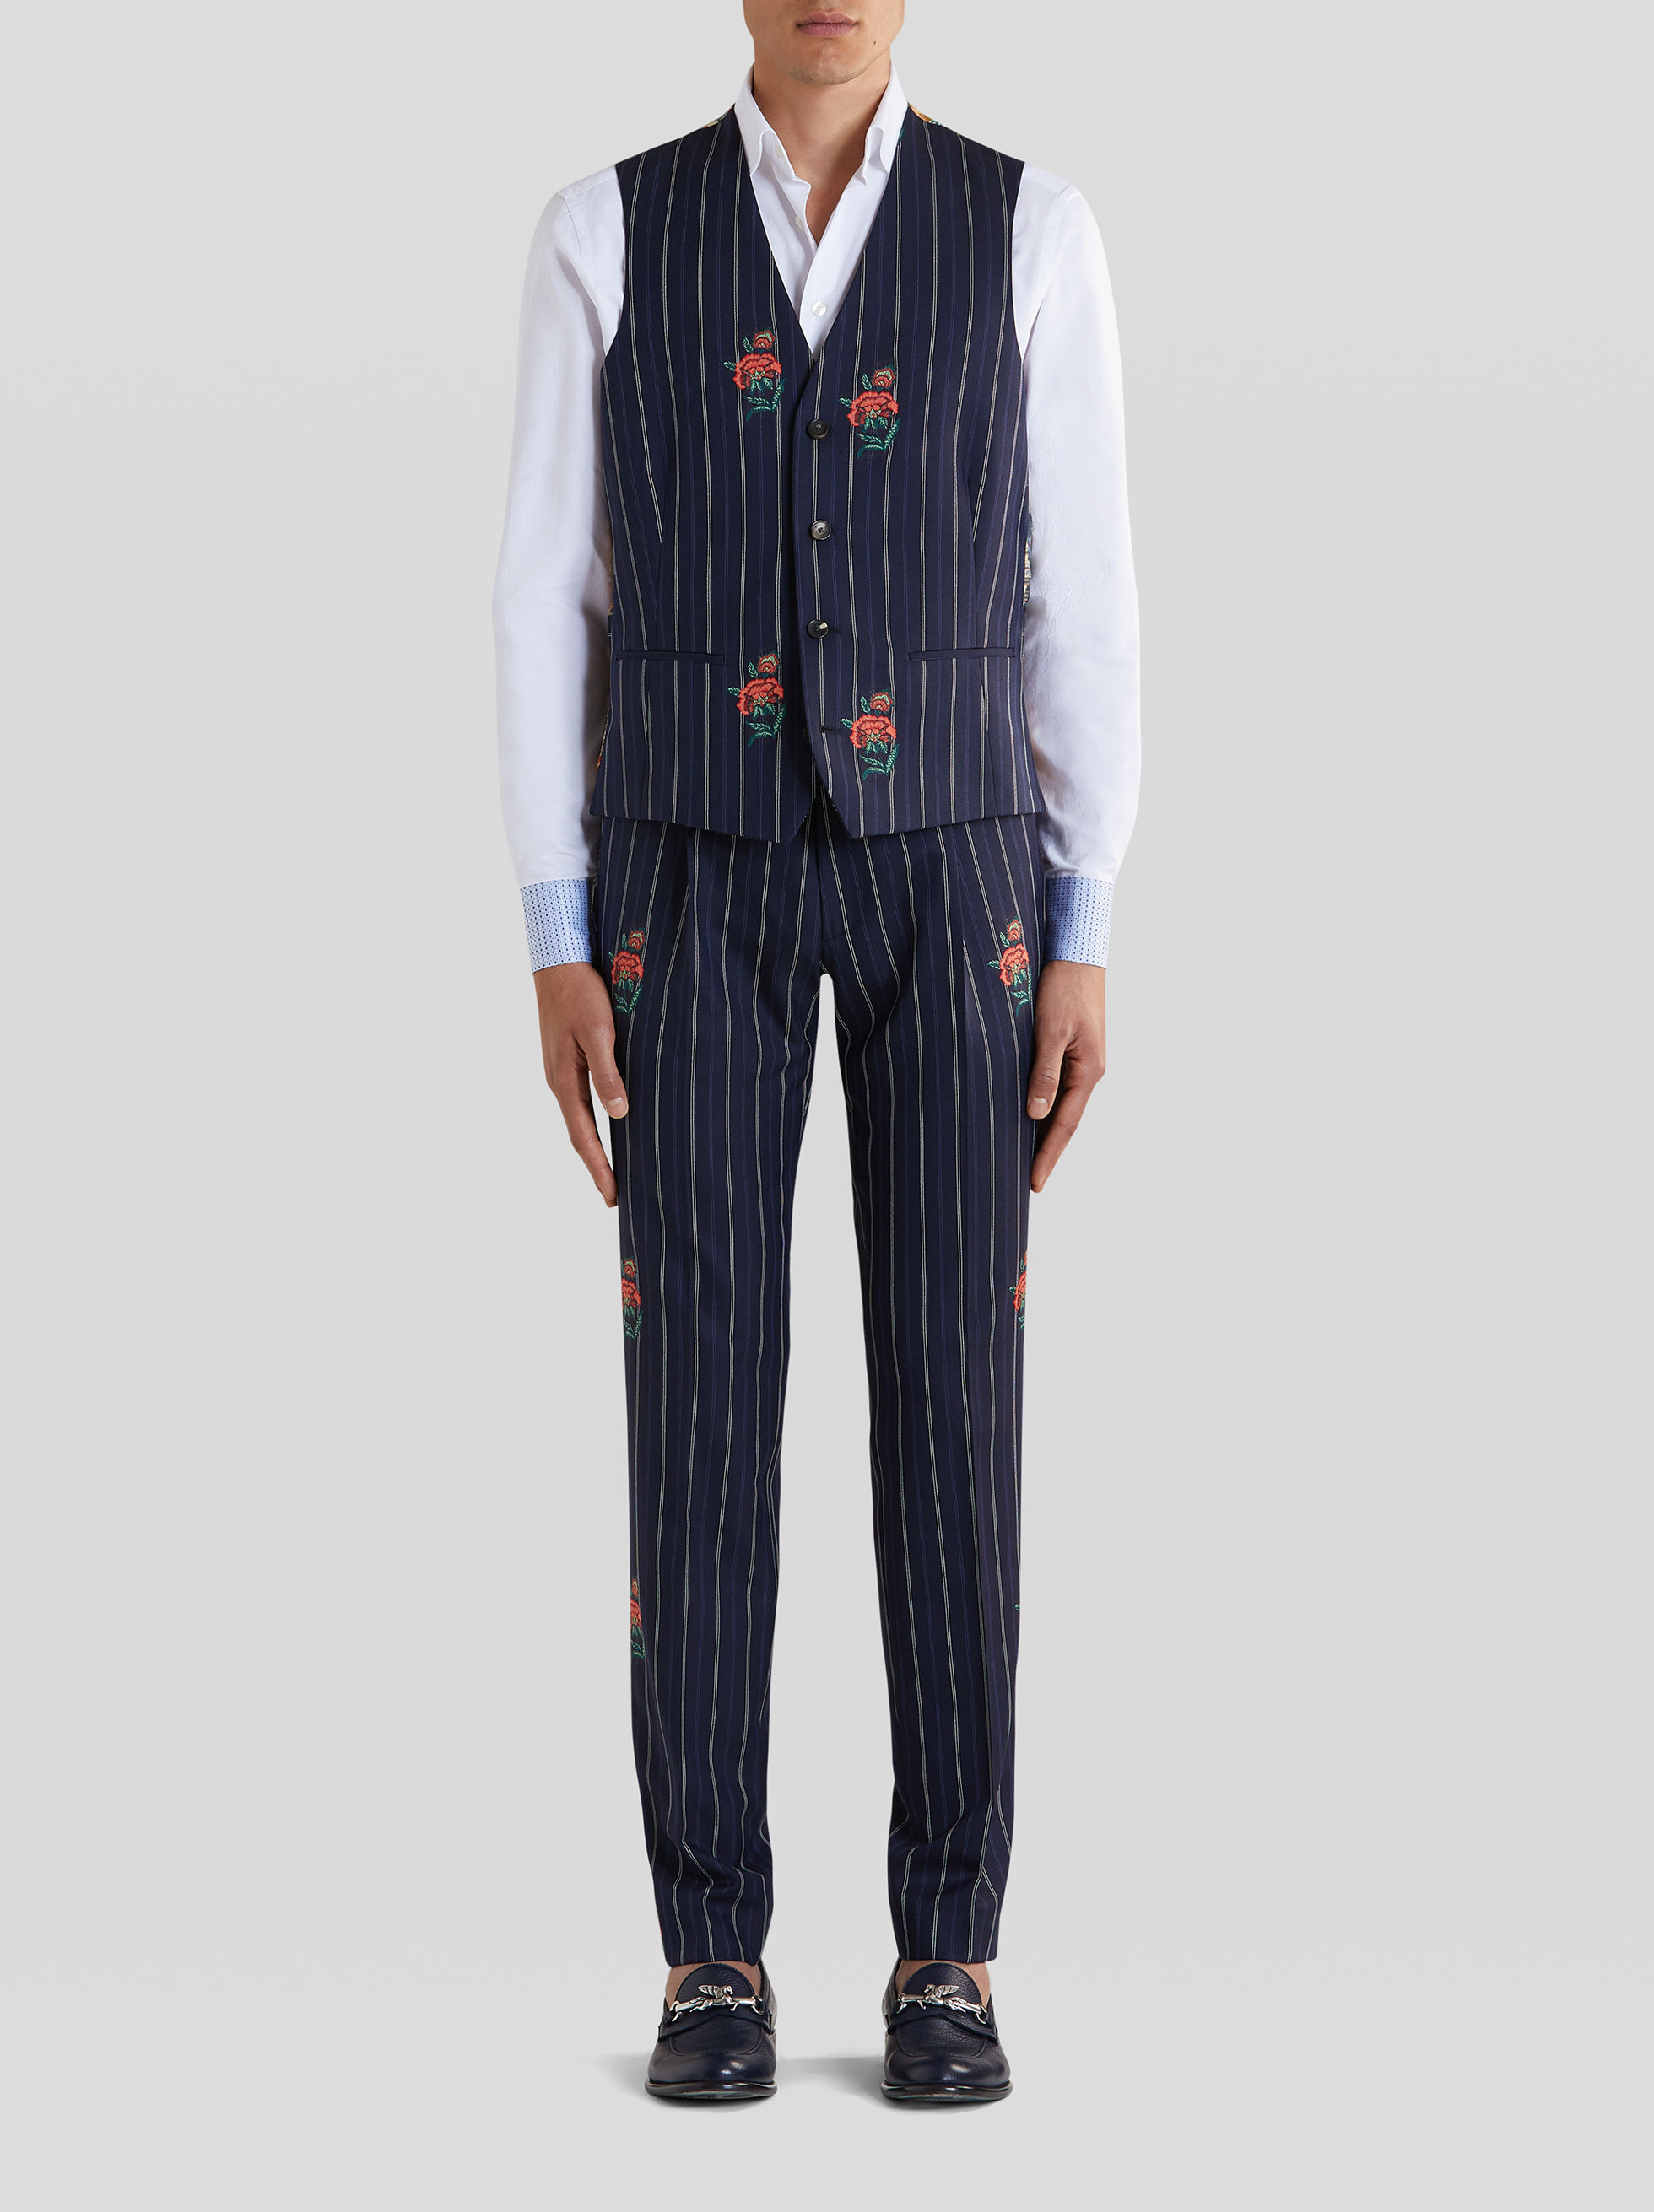 PINSTRIPE JACQUARD WAISTCOAT WITH FLOWERS